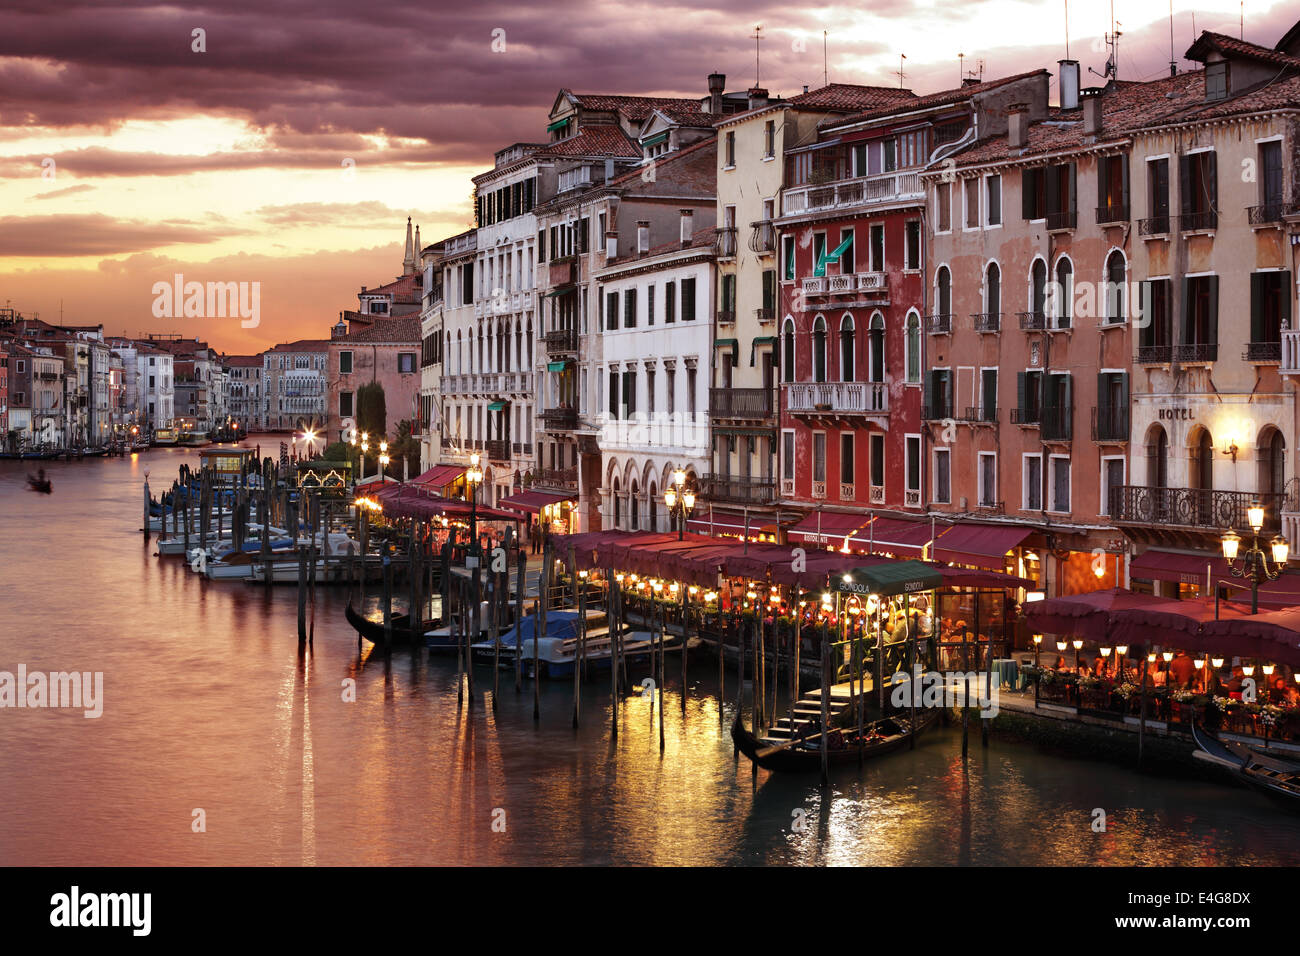 Venice Grand Canal at night - Stock Image